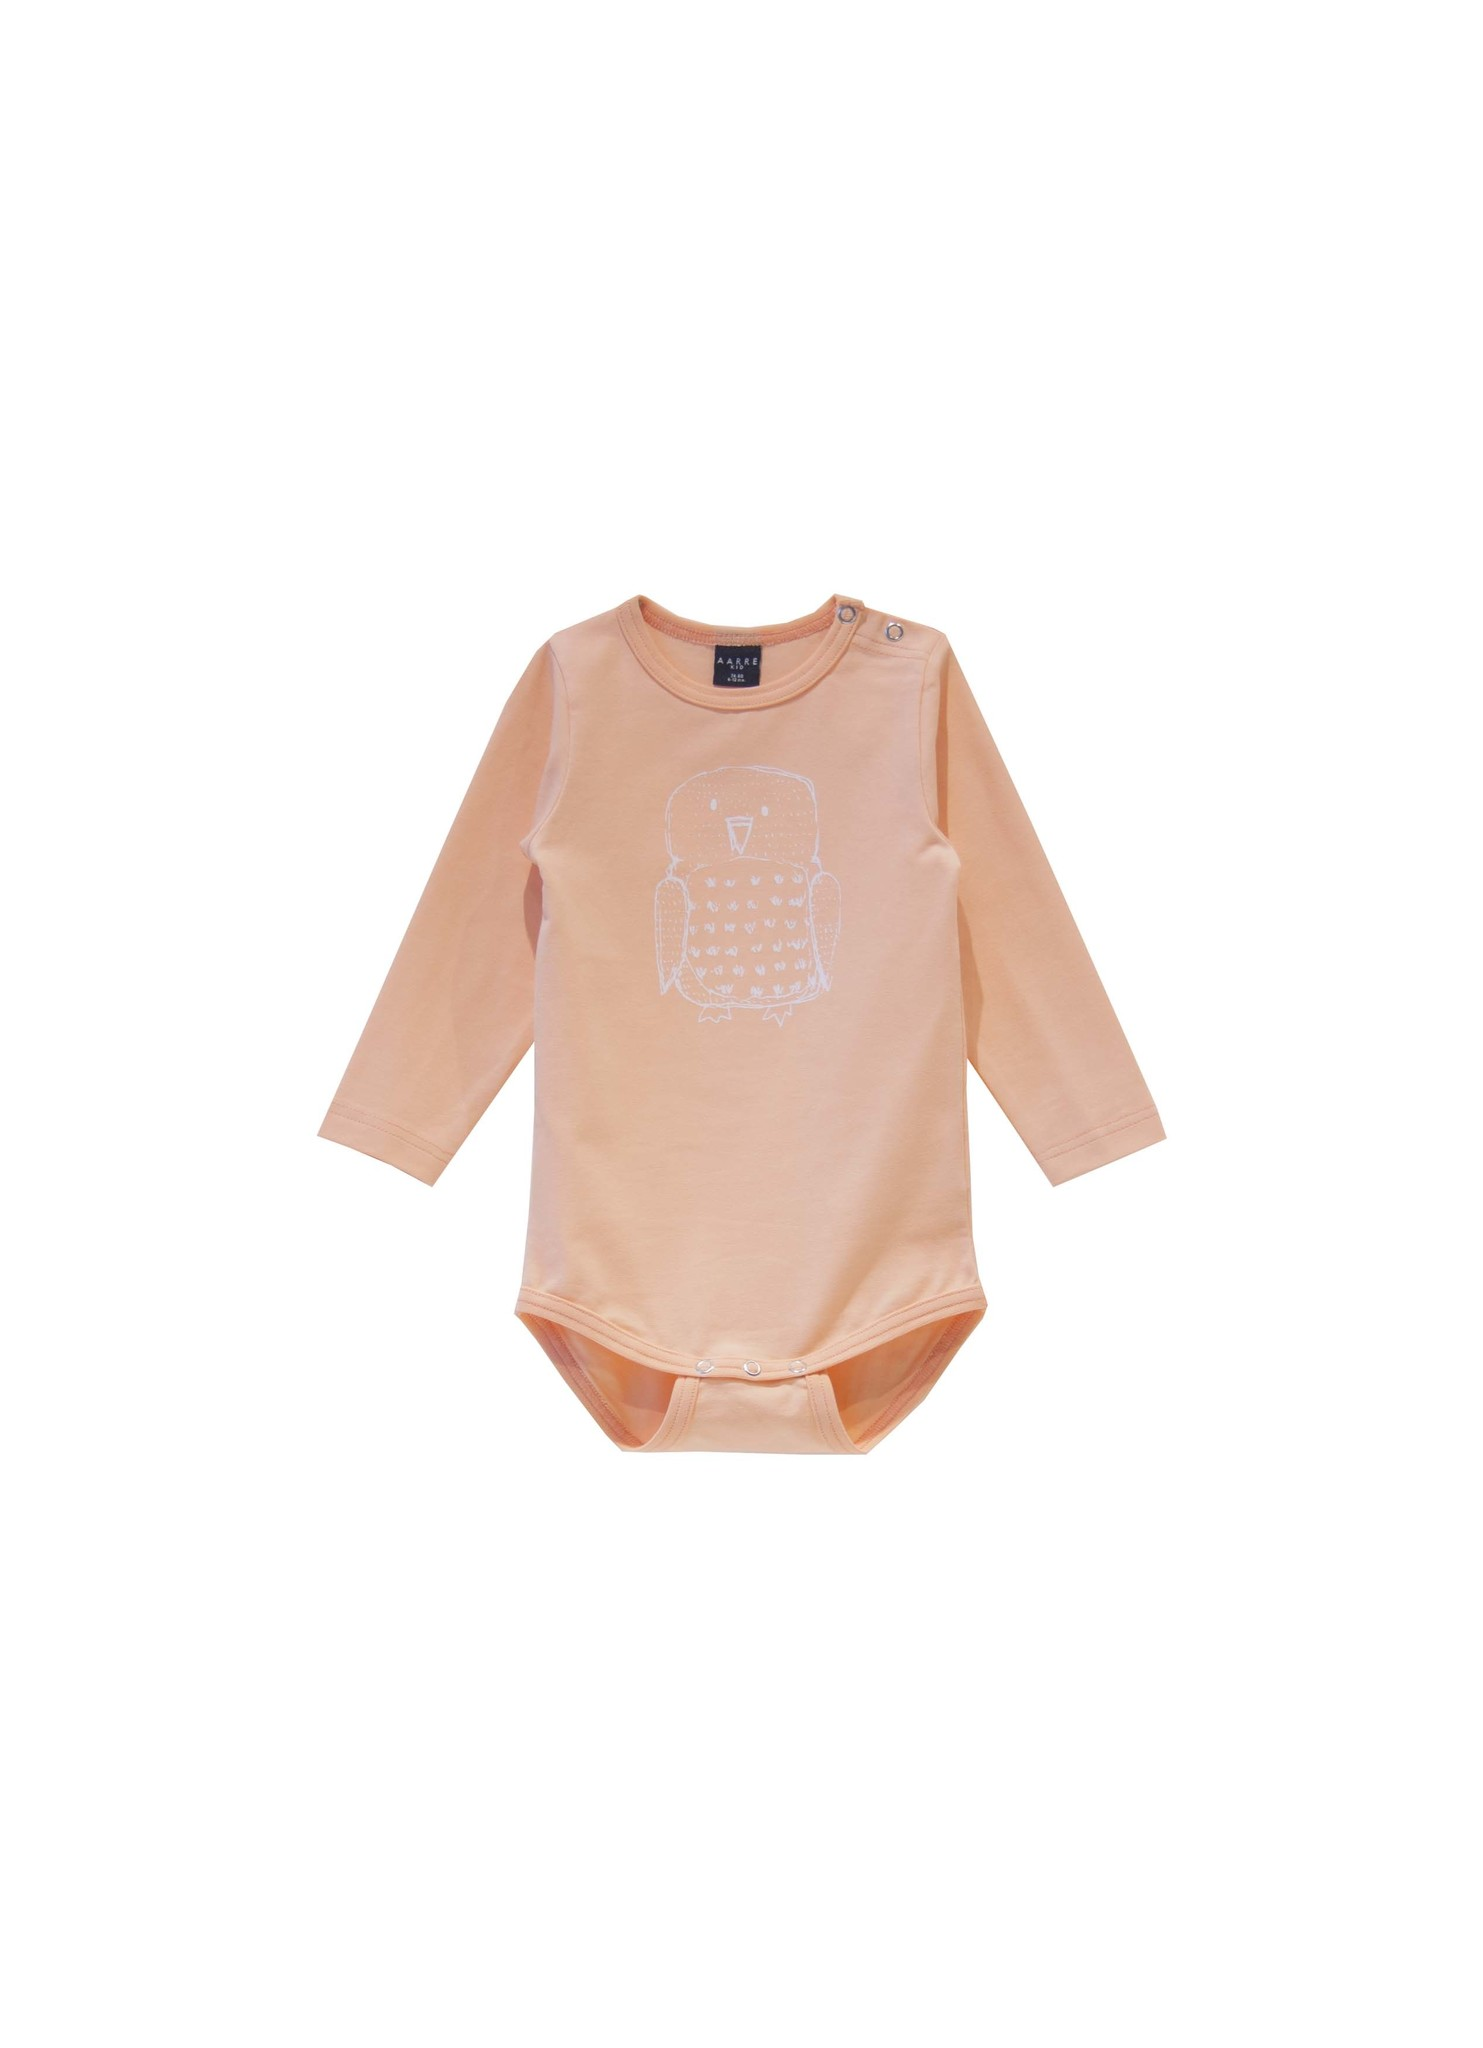 Body Owl orange/peach from organic cotton